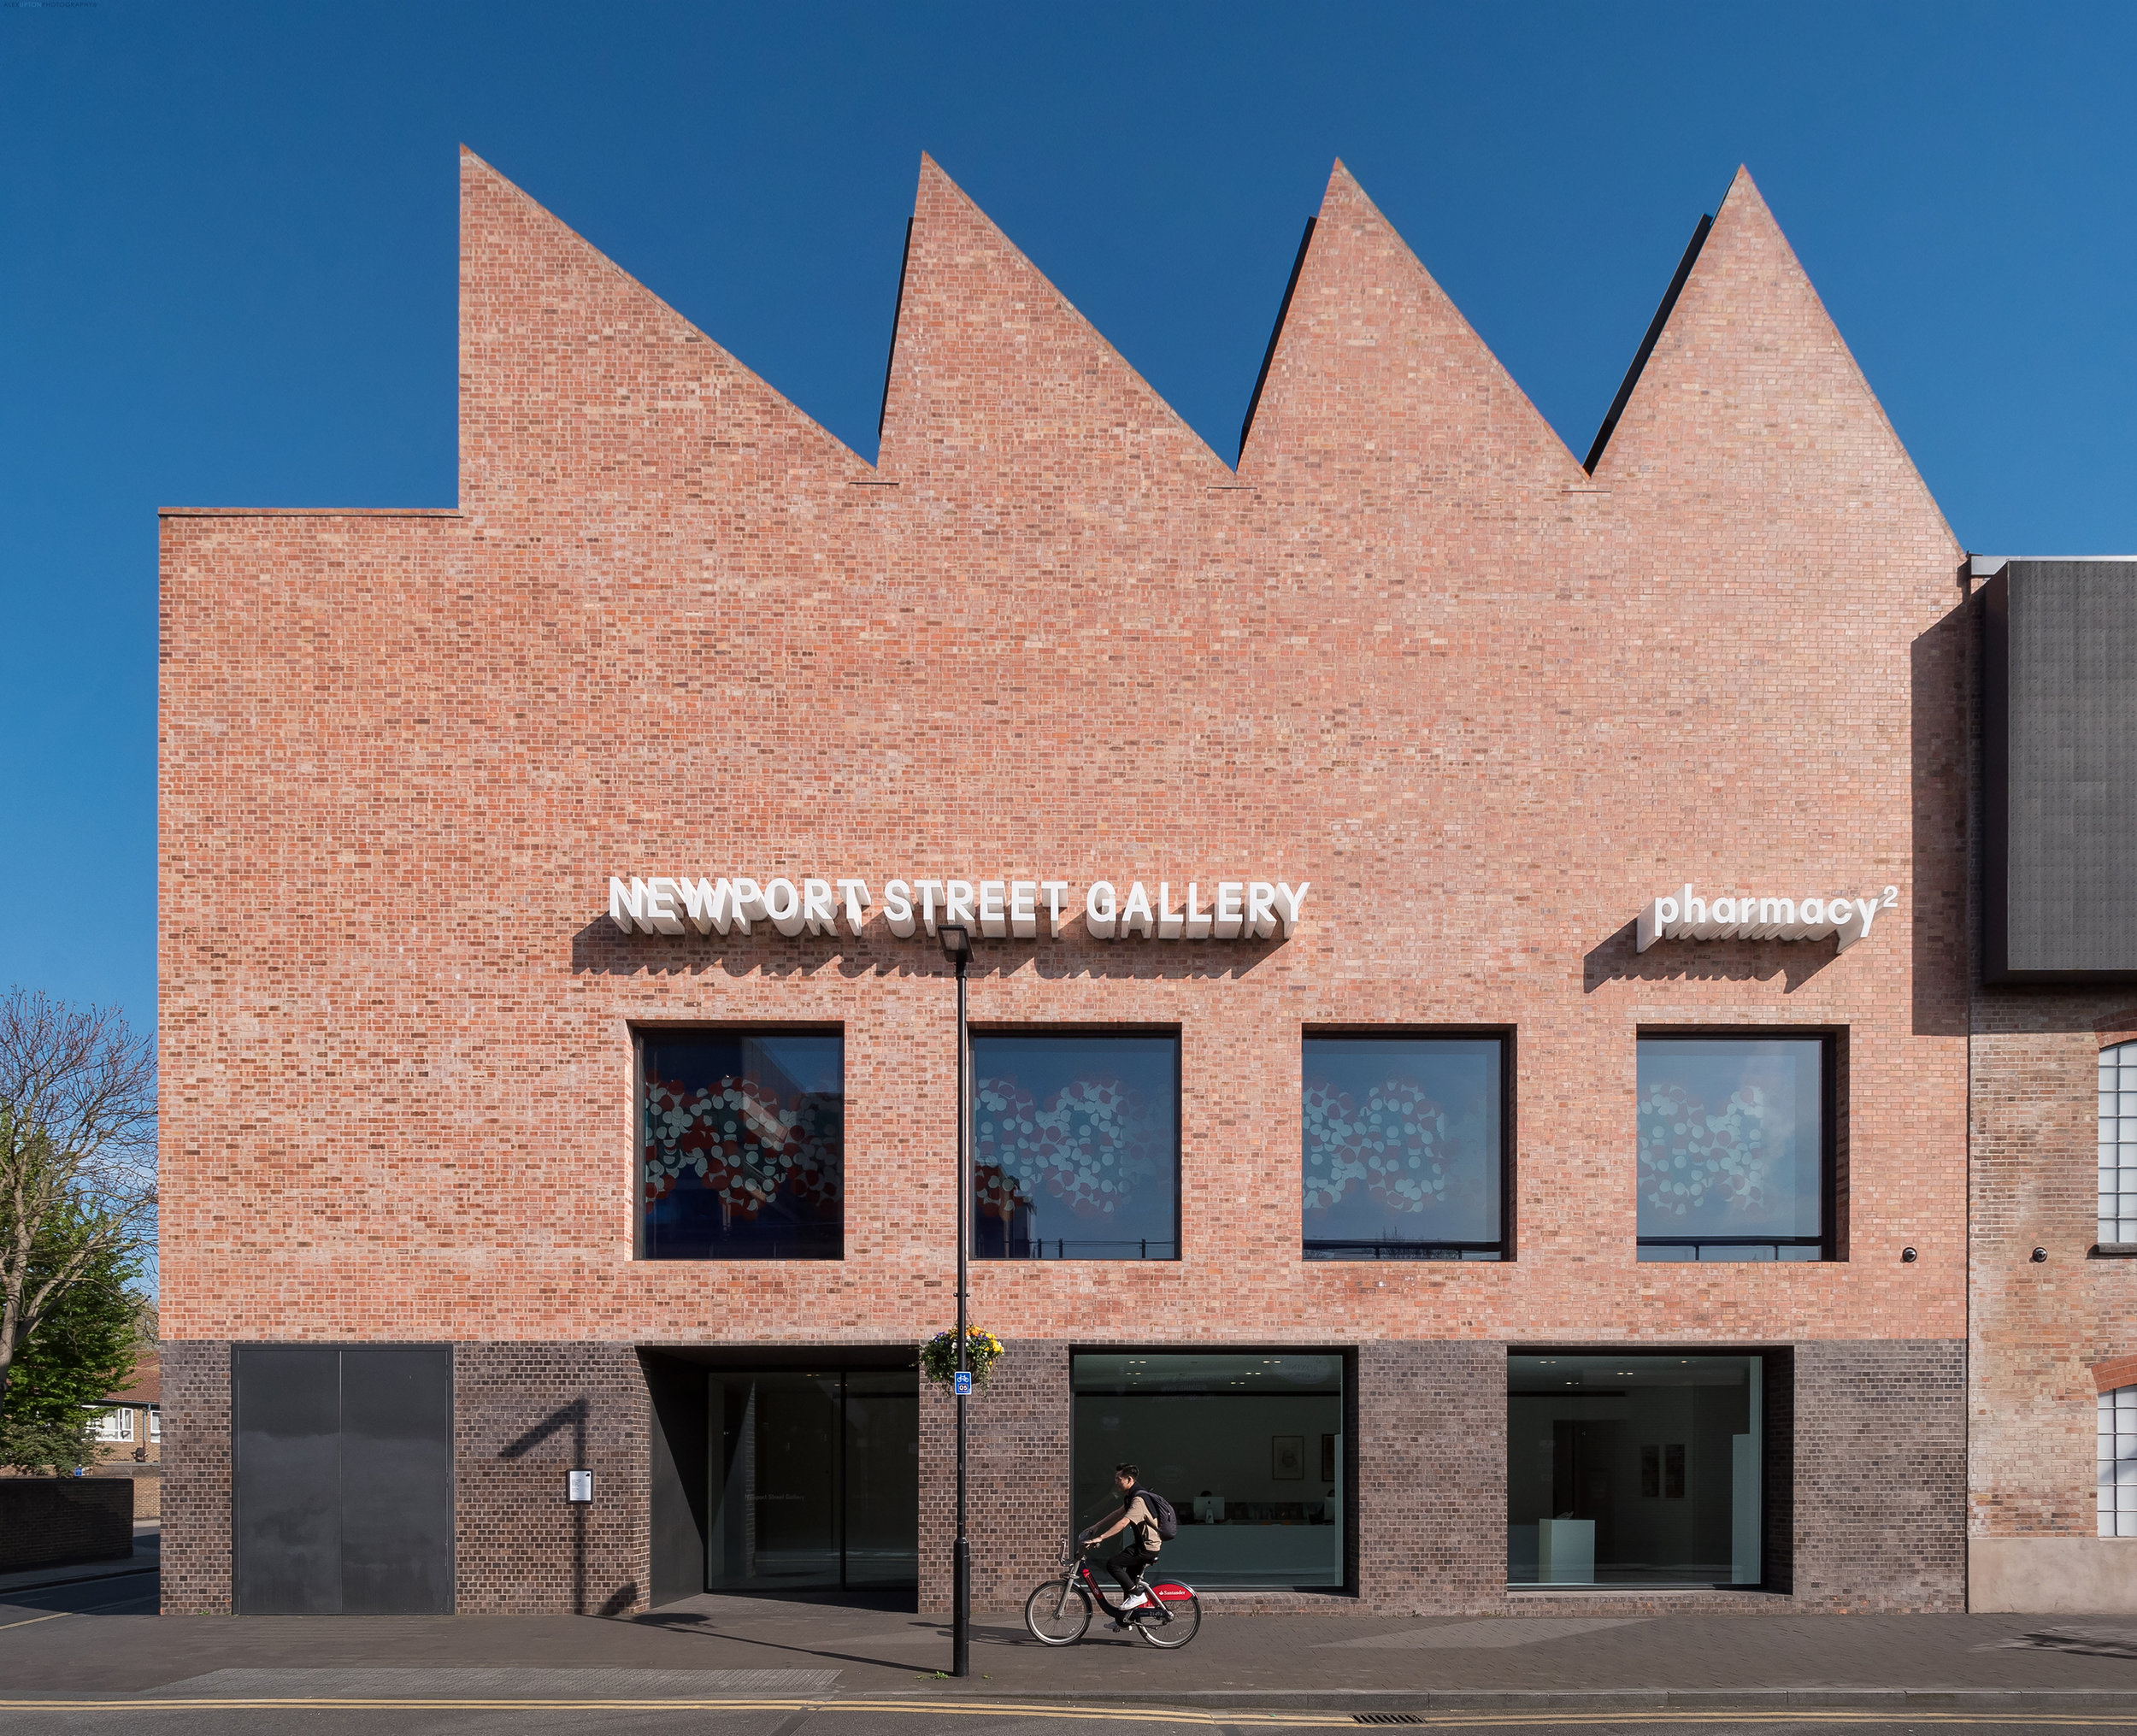 Architectural Photography of Newport Street Gallery's Main Entrance.